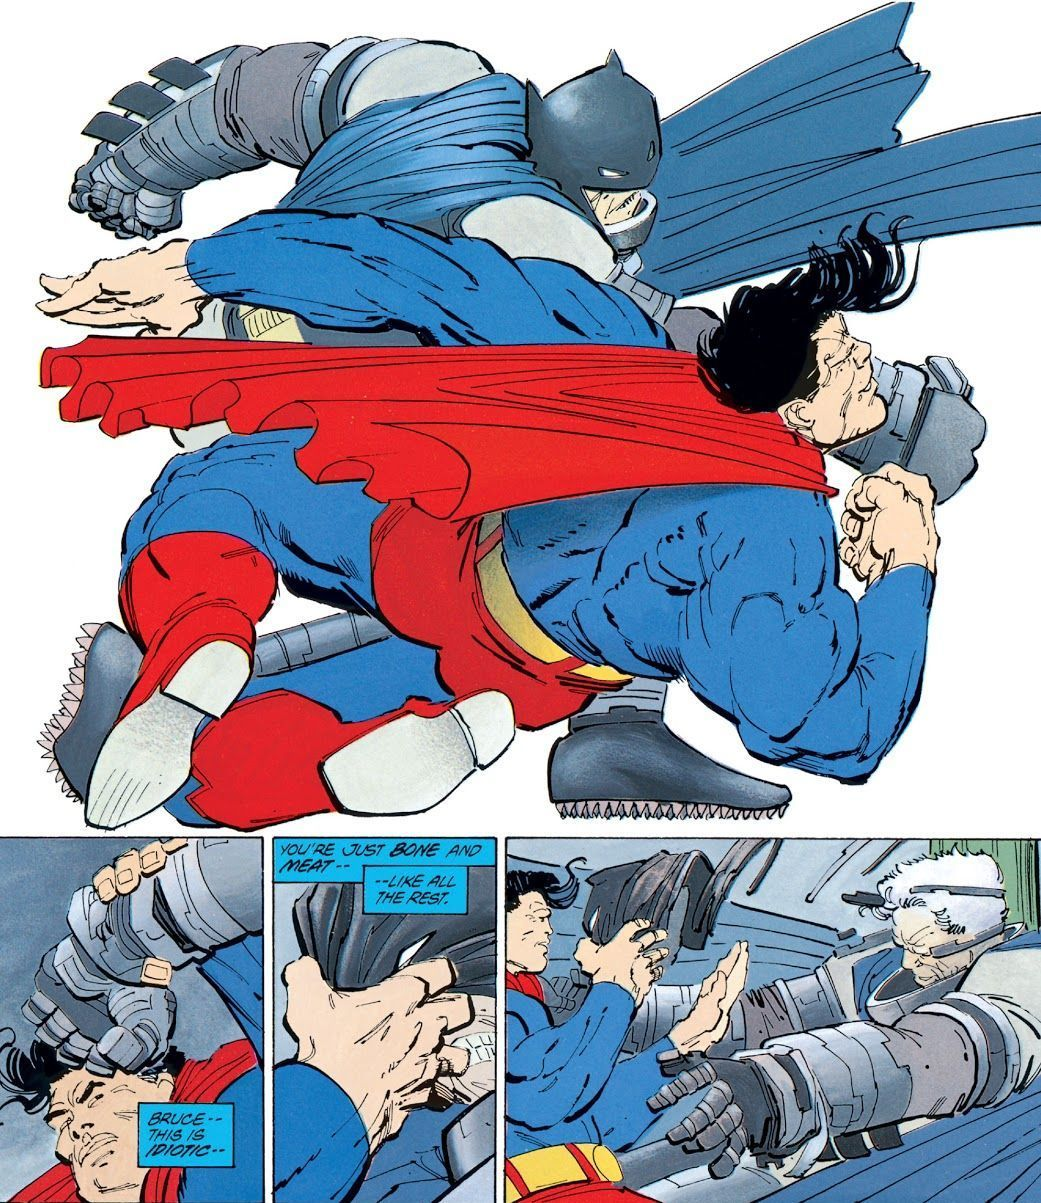 Dark Knight Returns #4 (Writer: Frank Miller, Artists: Frank Miller)